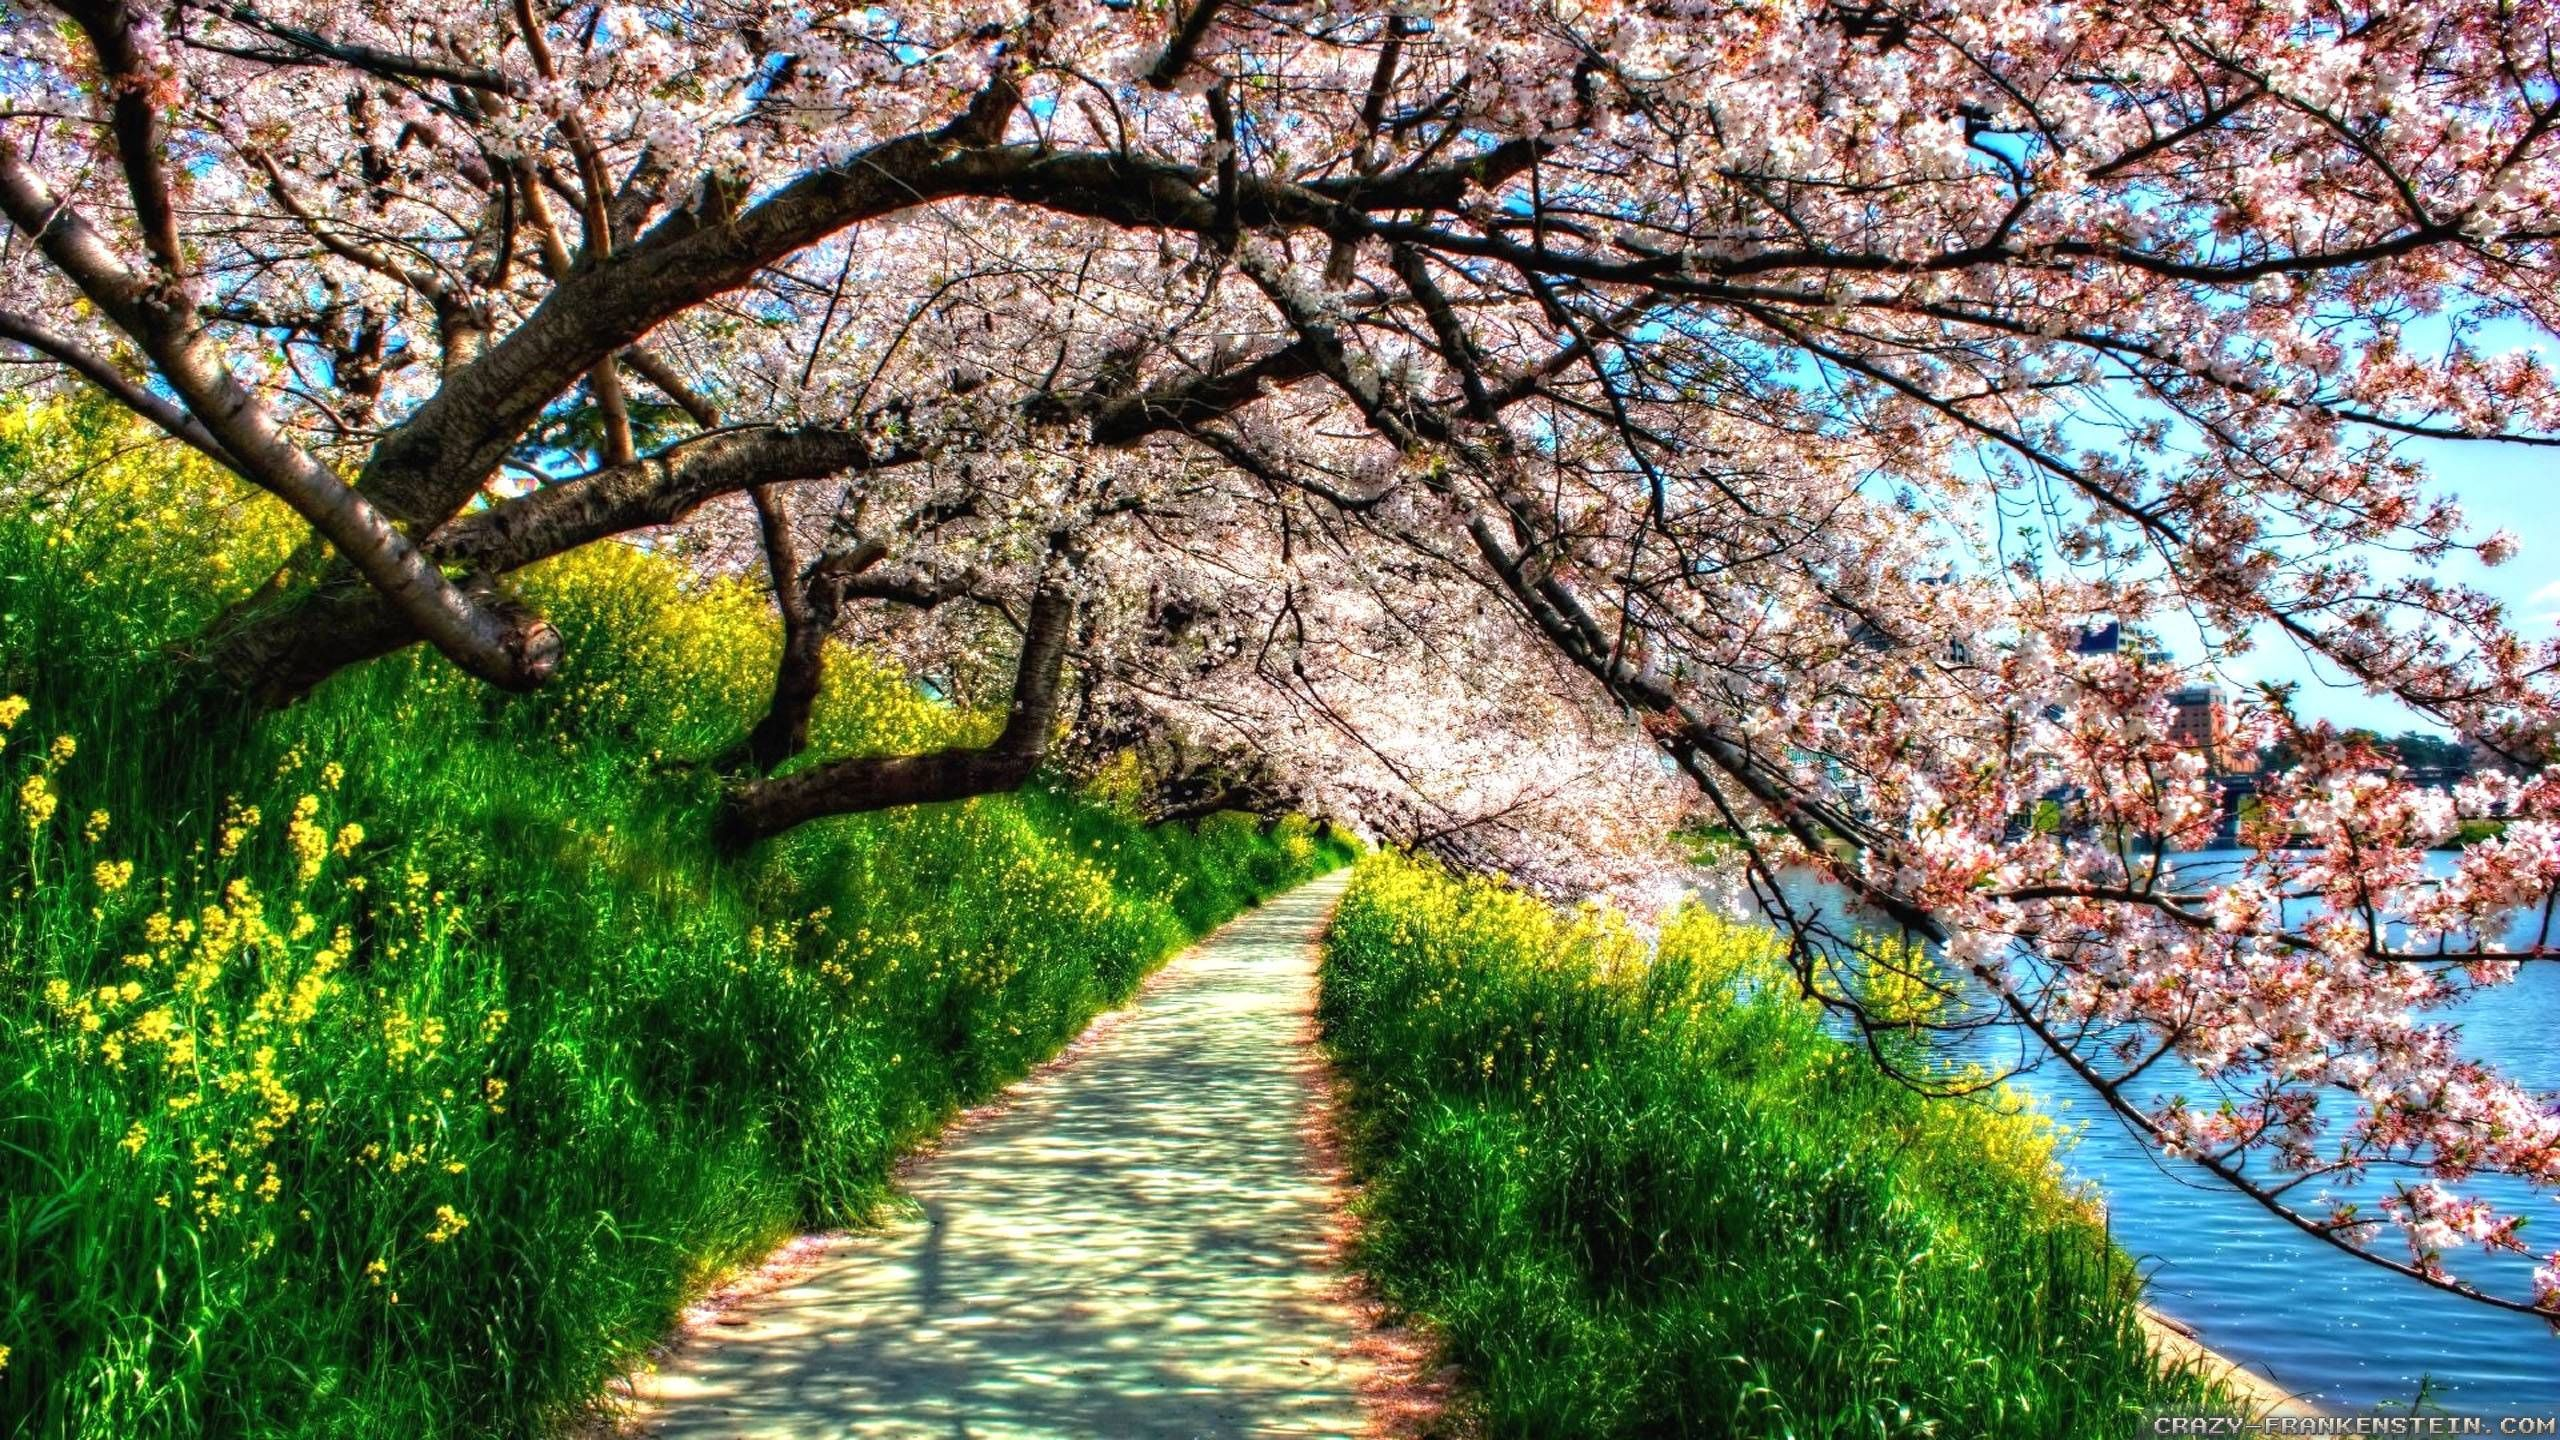 Spring Nature Photo Images 6 Hd Wallpapers Hdimges Desktop Background Nature Spring Wallpaper Spring Nature